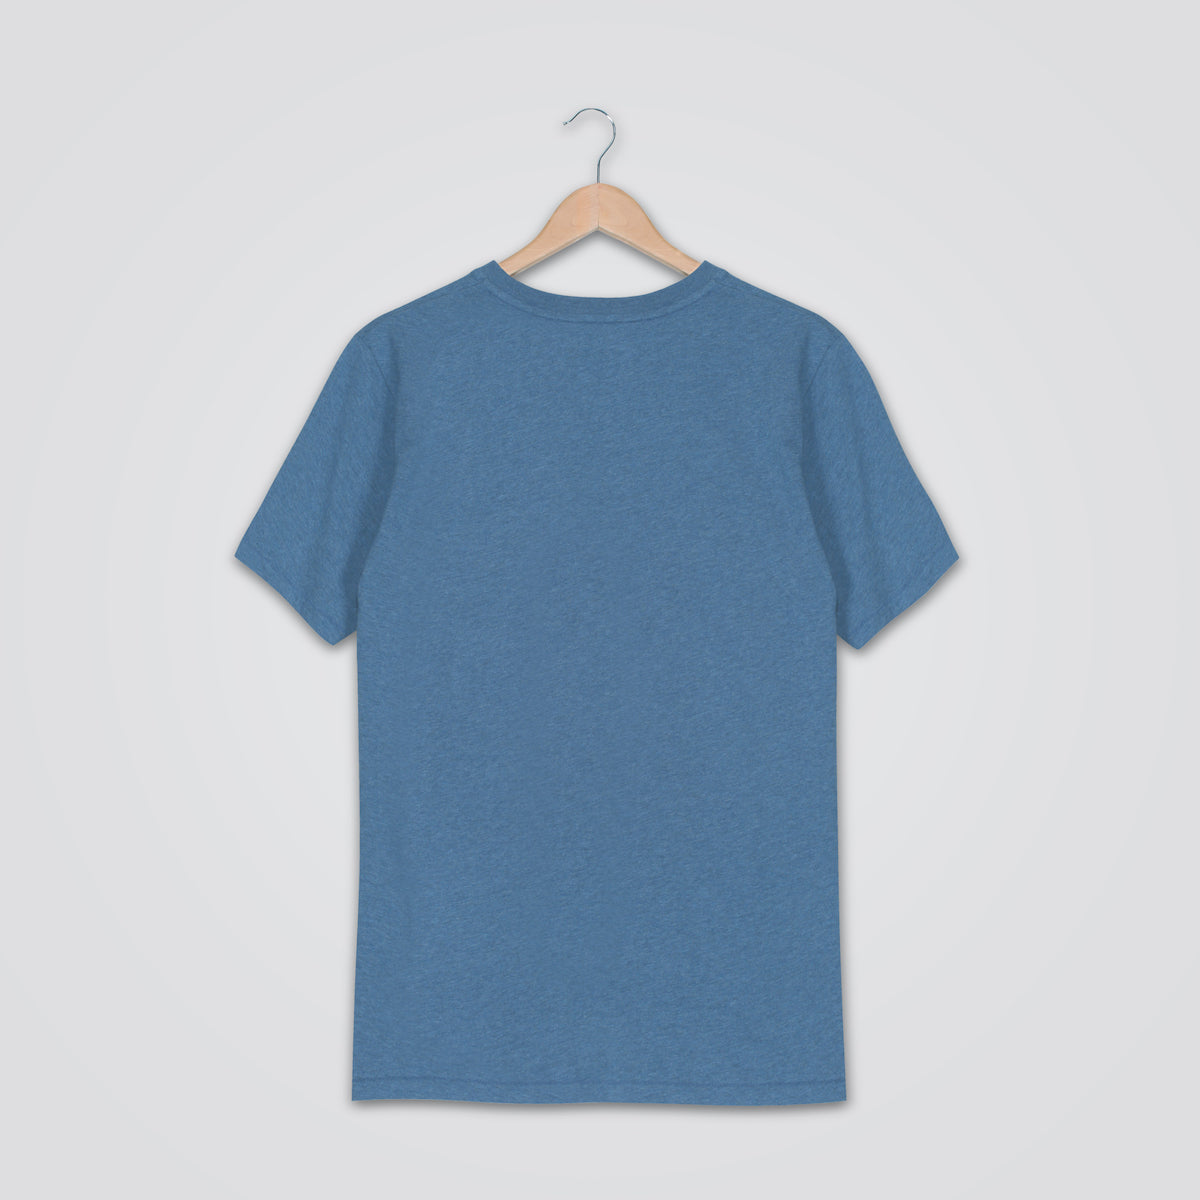 Everyday T-Shirt - Dark Denim Marl image 8